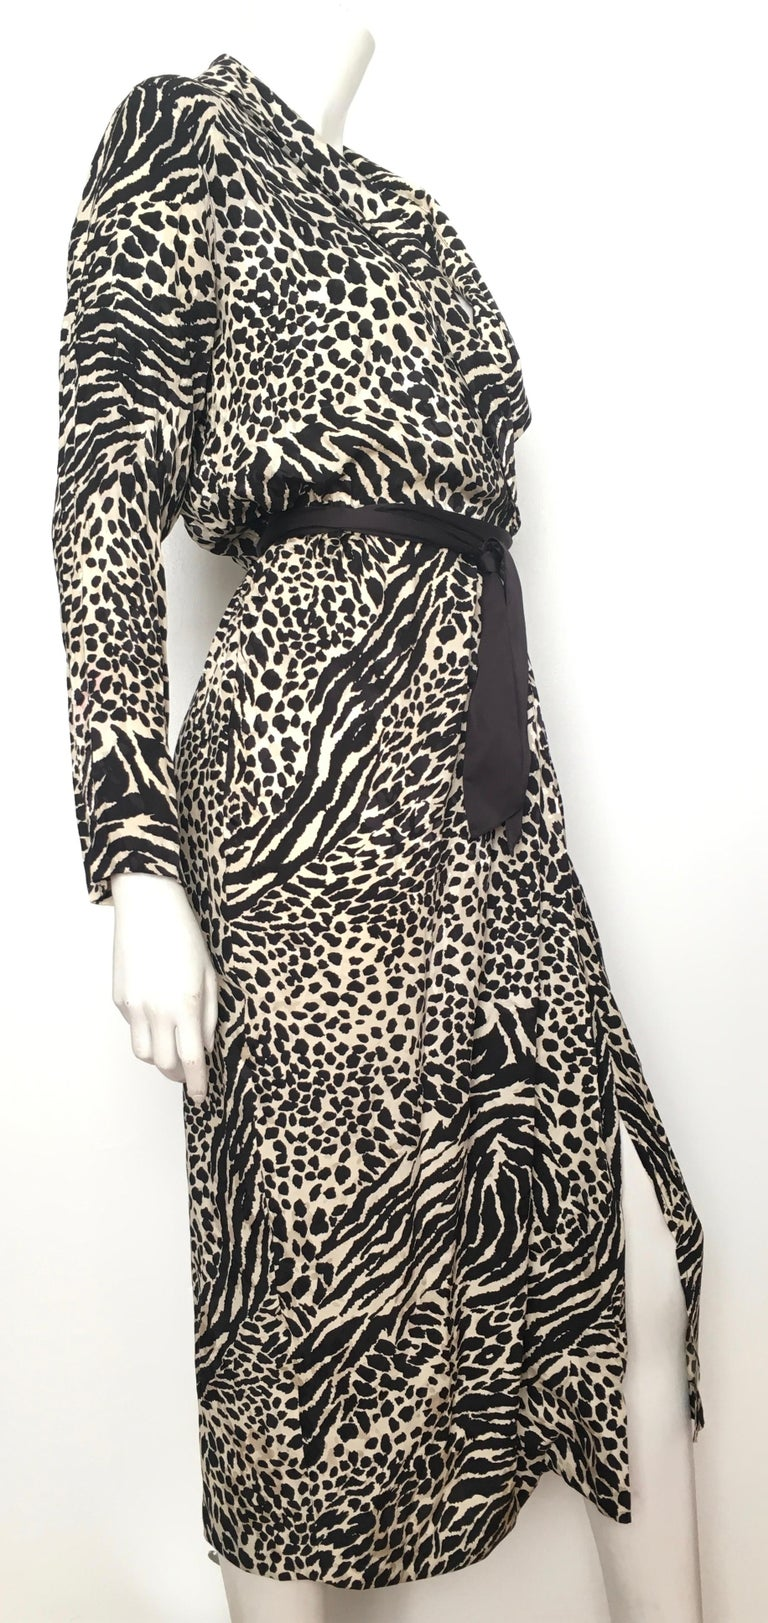 Geoffrey Beene for Lillie Rubin 1980 Animal Print Silk Dress Size 6. In Excellent Condition For Sale In Atlanta, GA